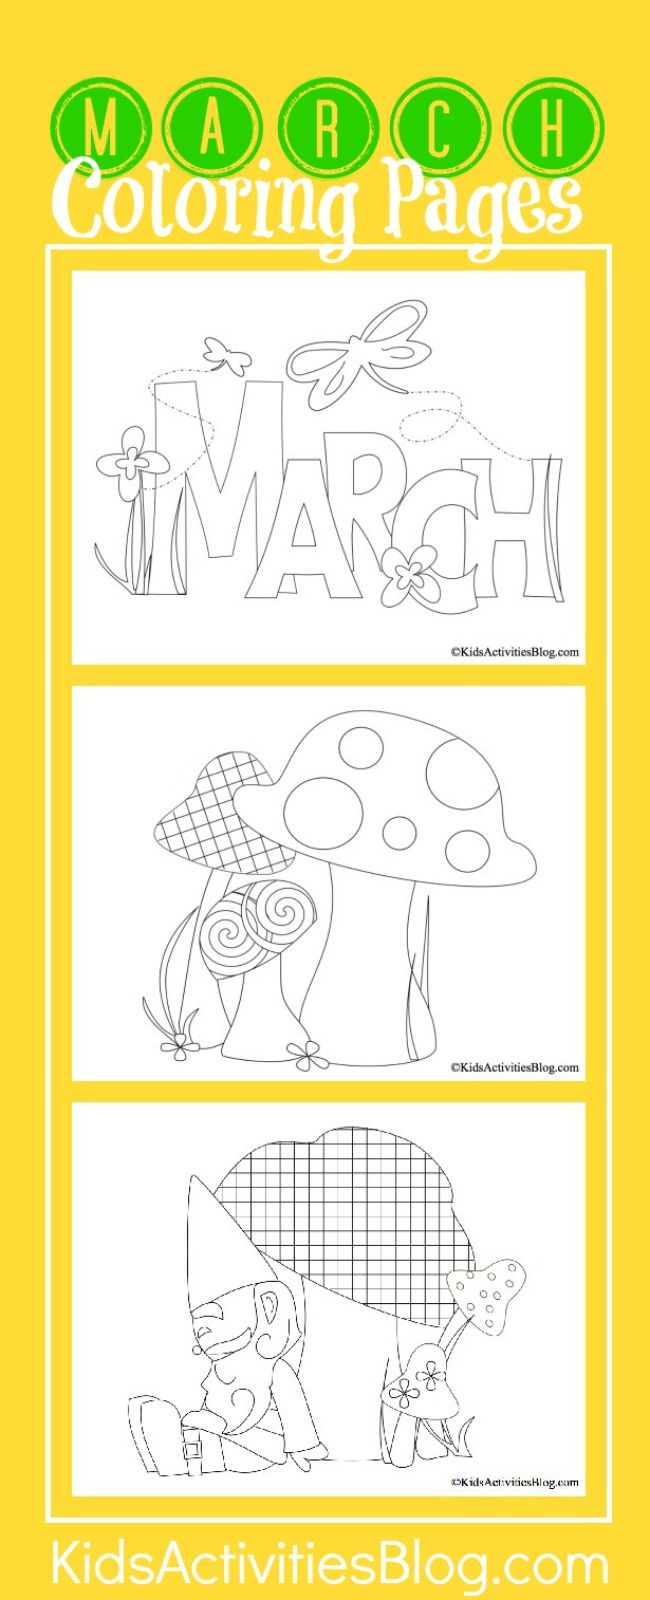 Free printable coloring pages march - 3 Spring March Coloring Pages For Kids